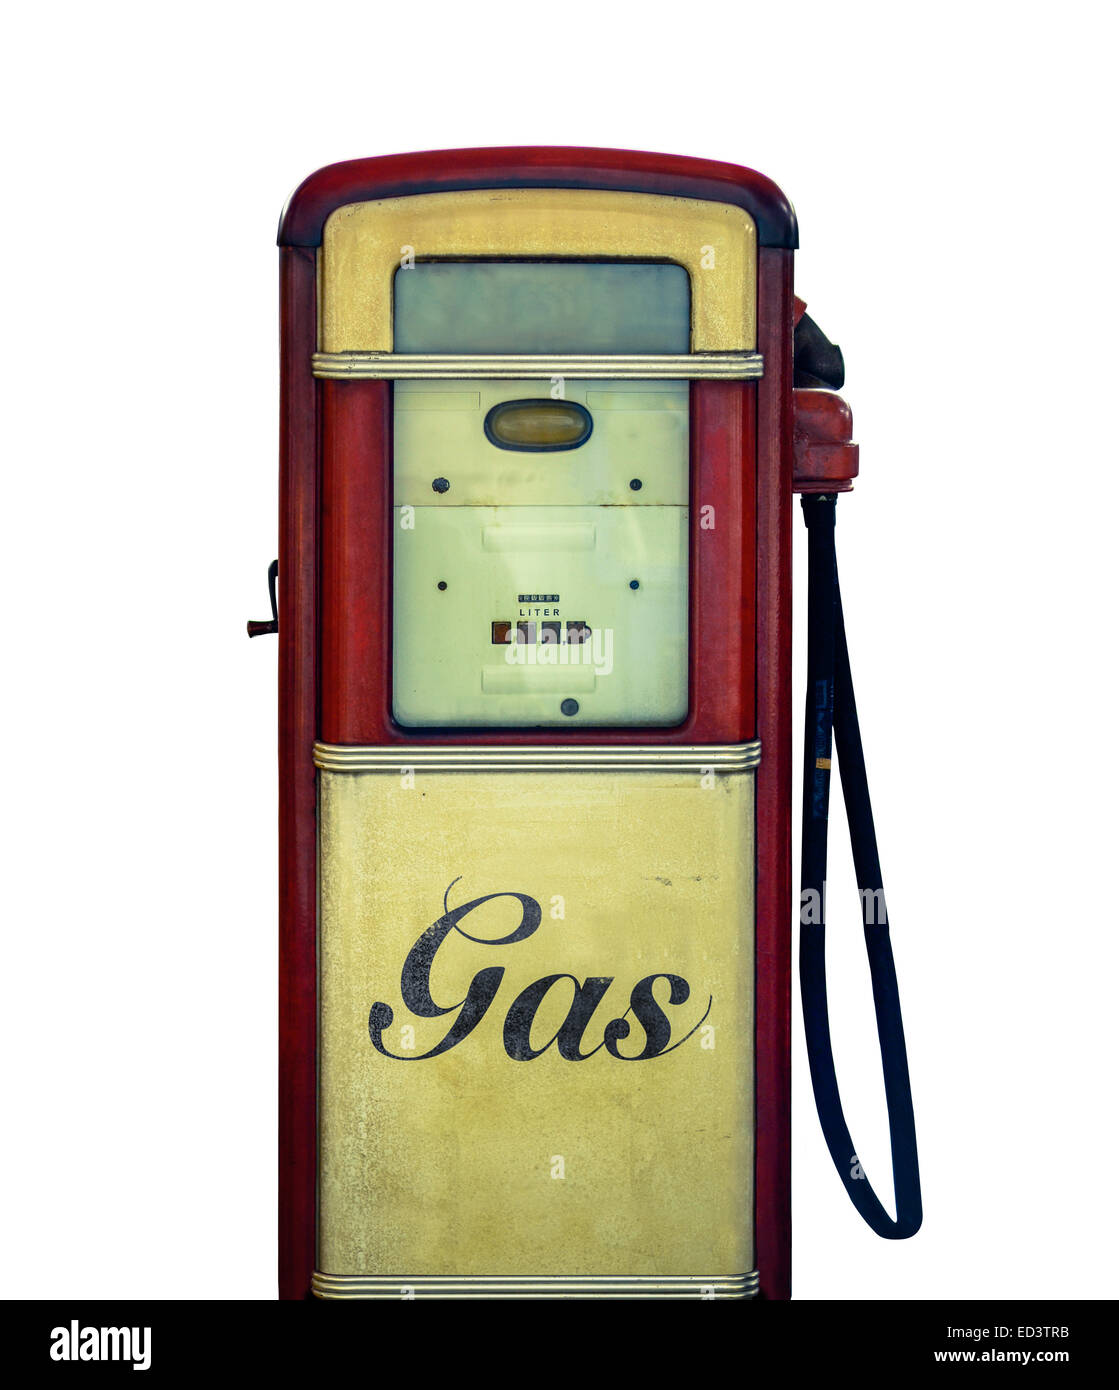 vintage gas station pump photos vintage gas station pump. Black Bedroom Furniture Sets. Home Design Ideas